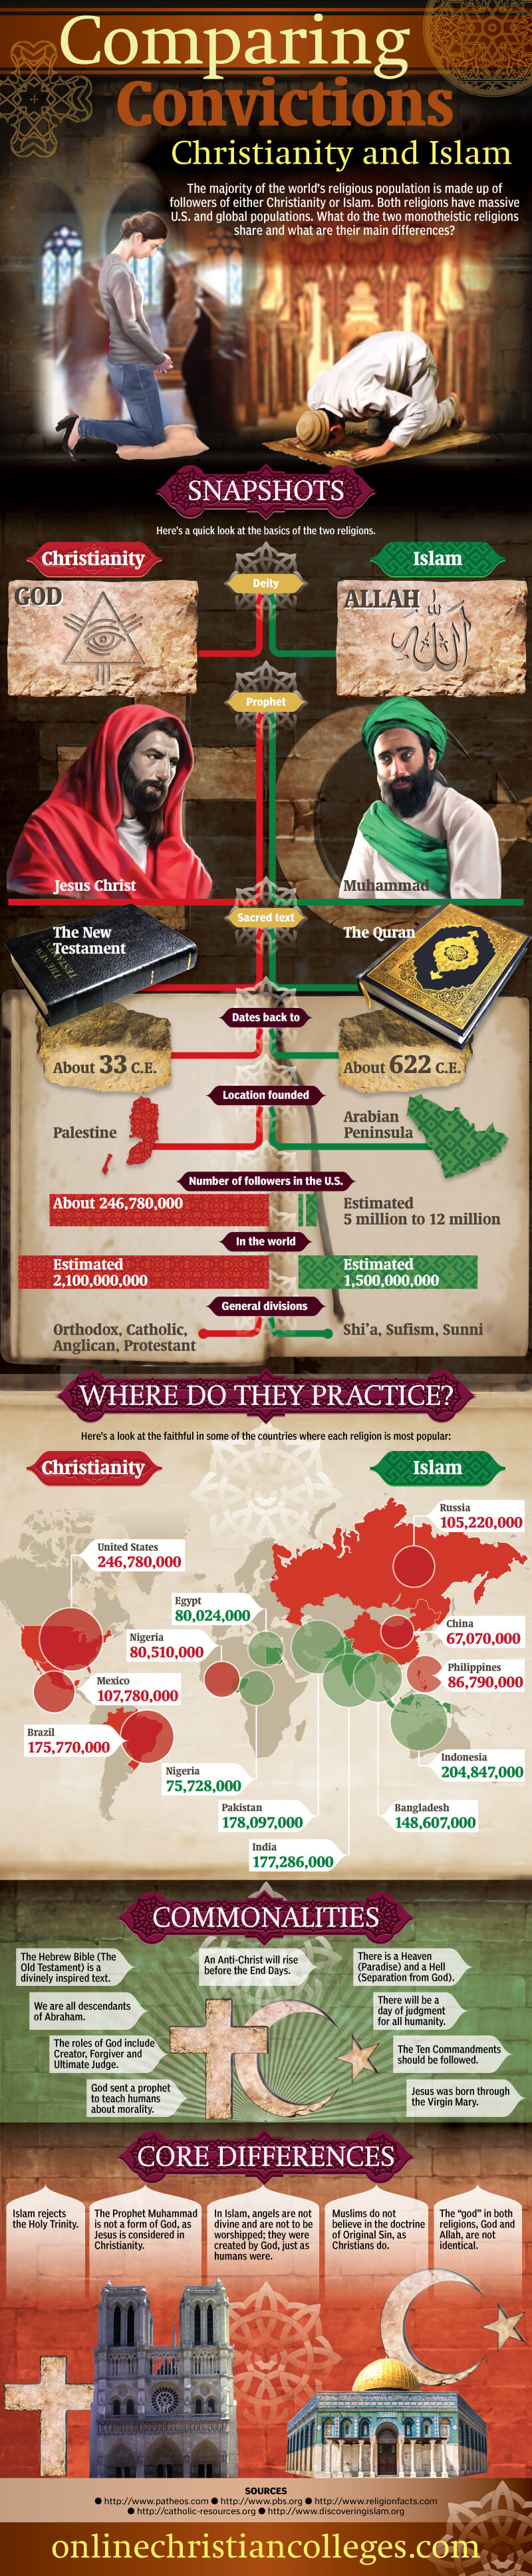 Christianity-compared-to-Islam-infographic